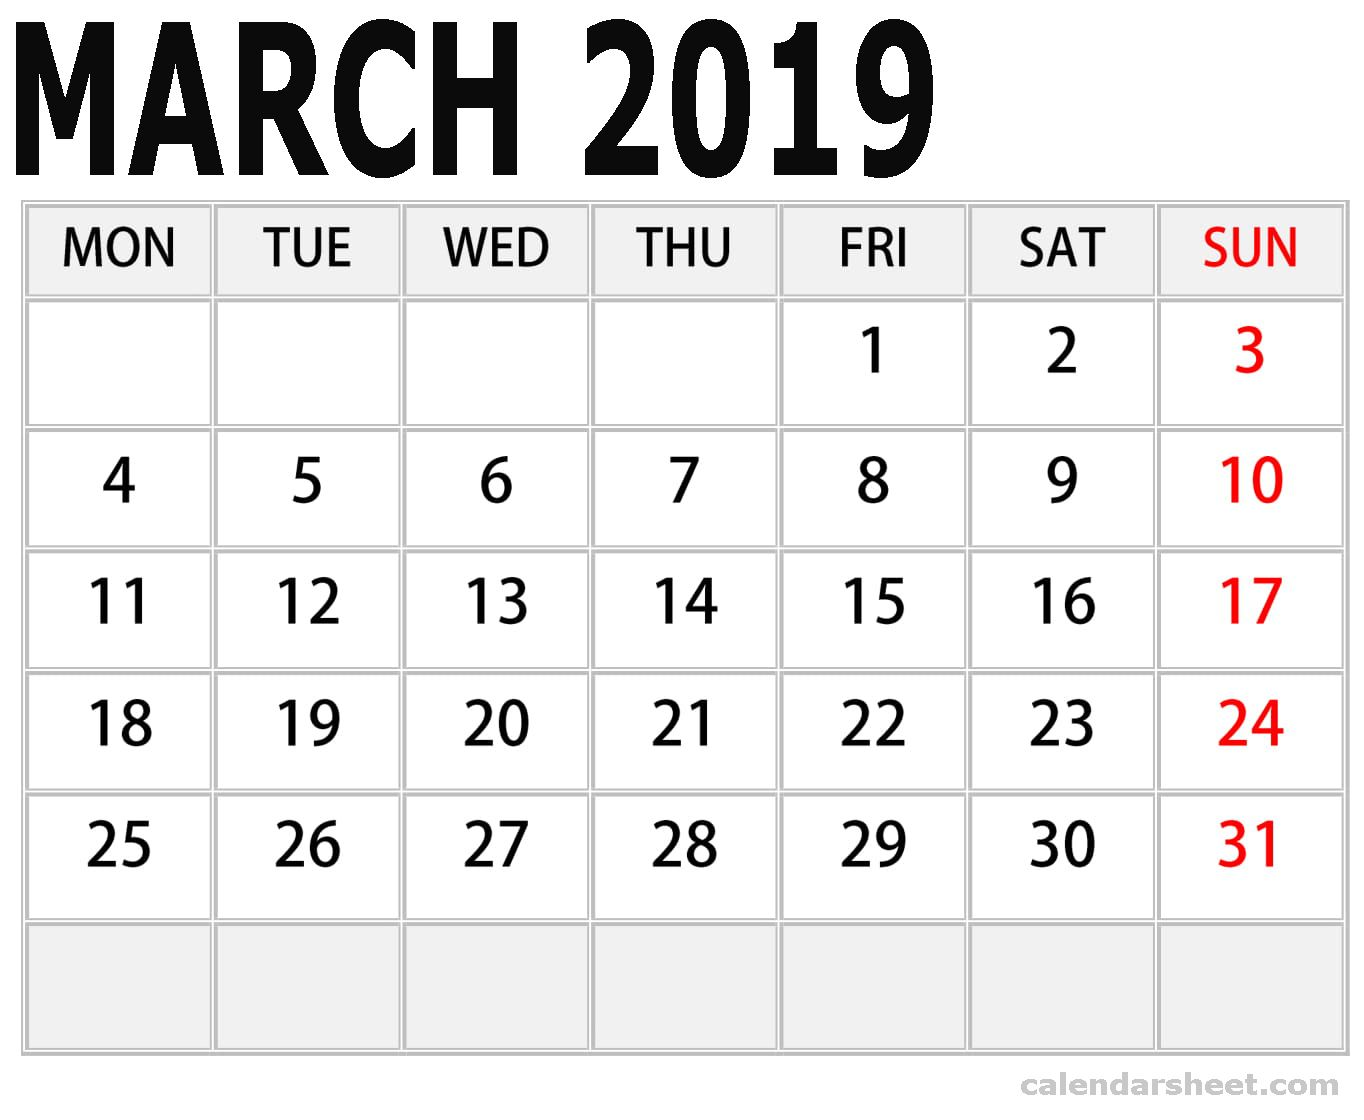 Calendar For March 2019 By Month Calendar printables